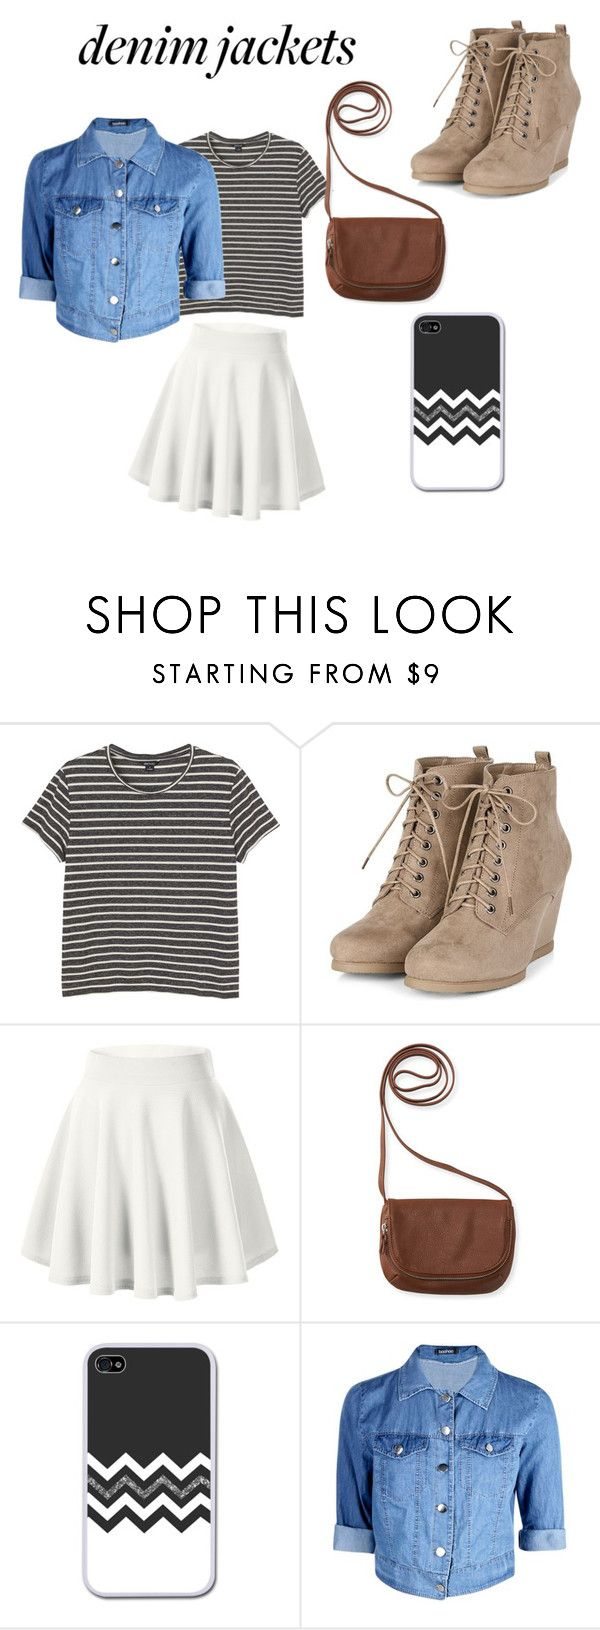 """""""Outfit"""" by taylor-dingman ❤ liked on Polyvore featuring Monki, Aéropostale and Boohoo"""